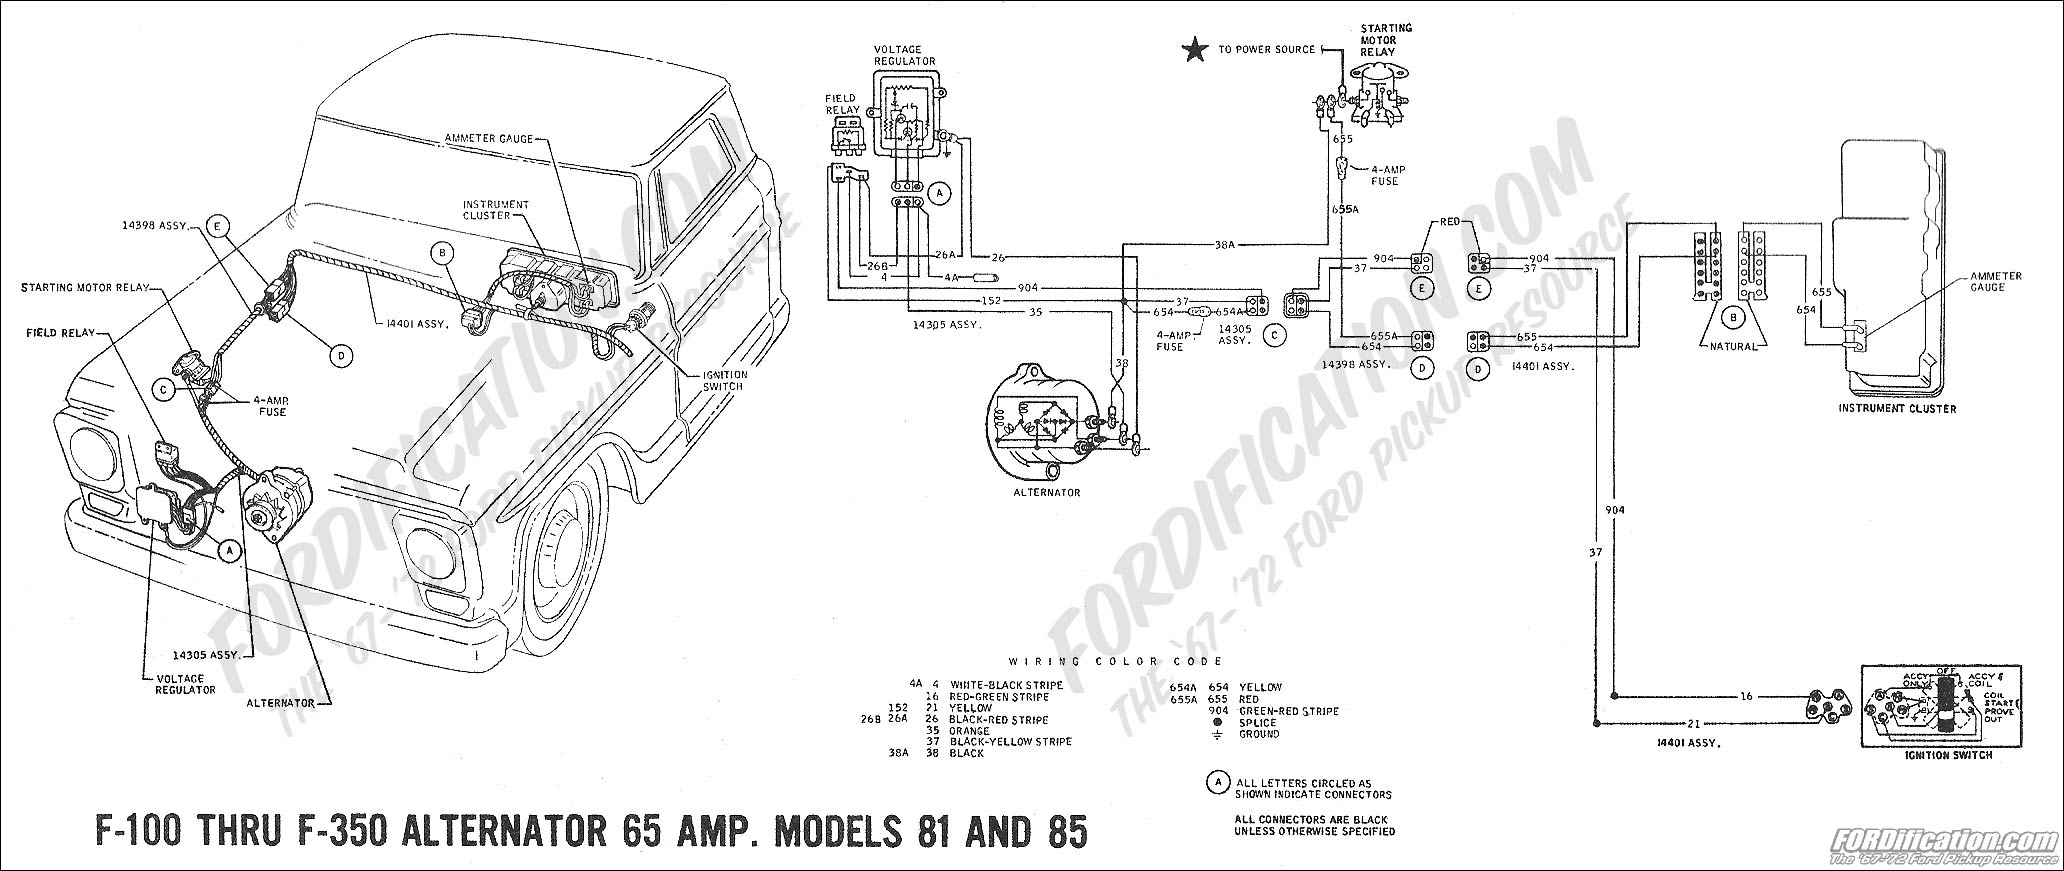 ford truck technical drawings and schematics section h wiring rh fordification com 1979 Ford F-250 Wiring Diagram 2003 Ford F-250 Wiring Diagram